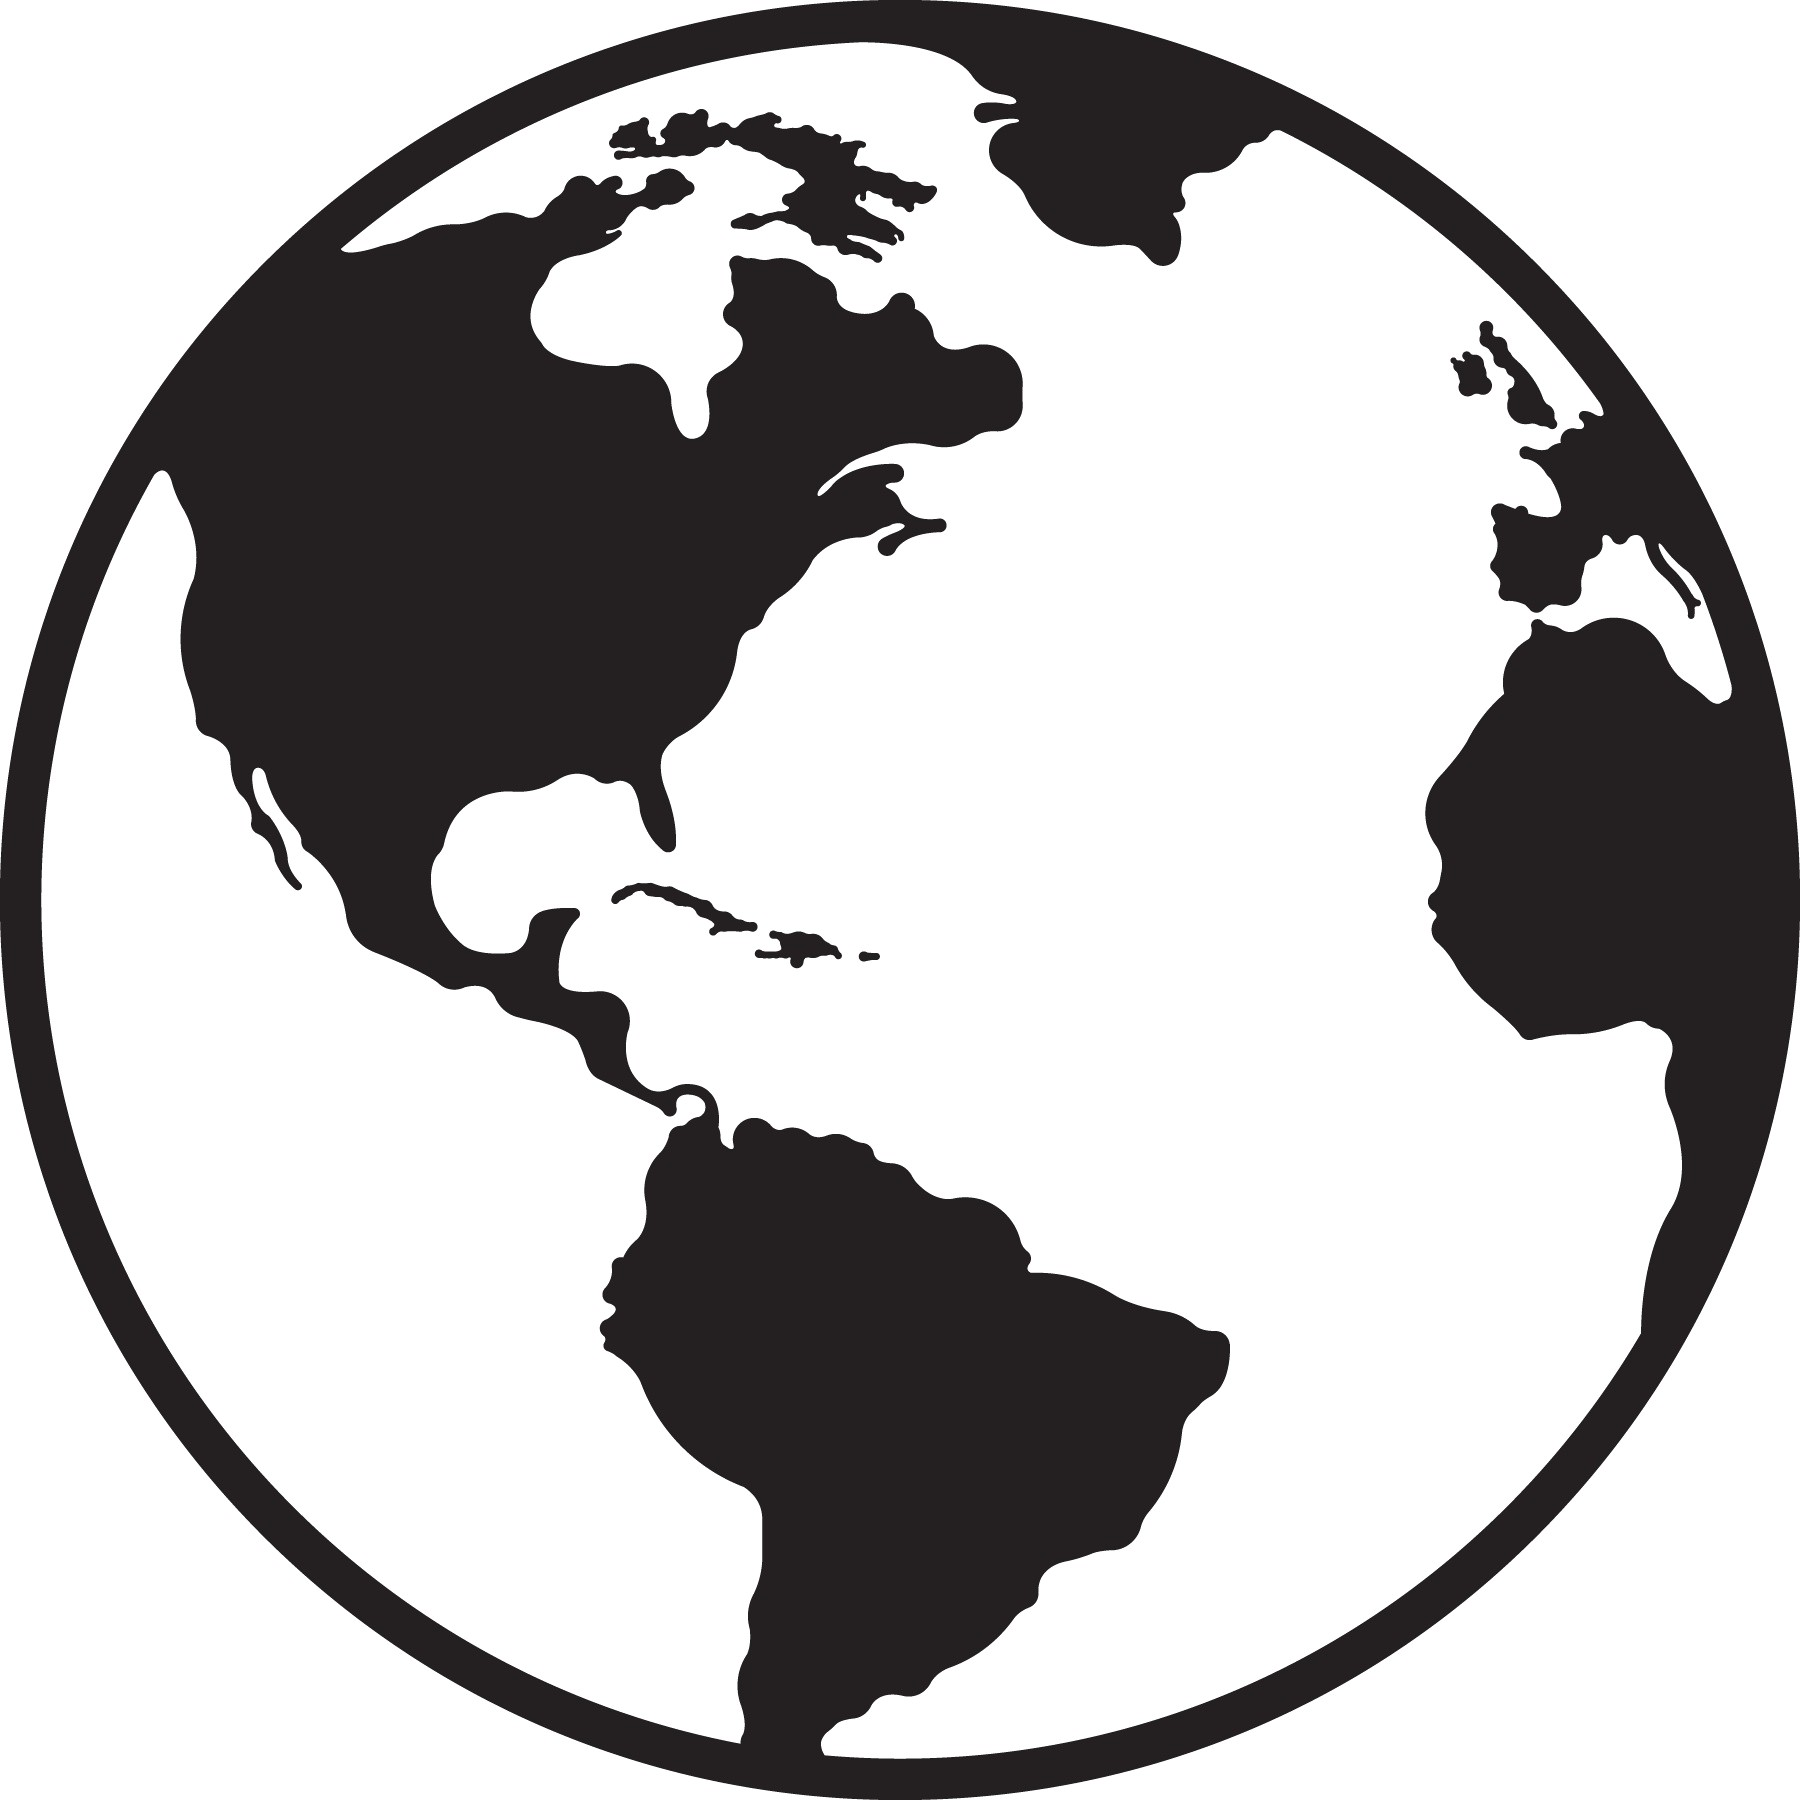 Globe Vector Black And White at GetDrawings.com.